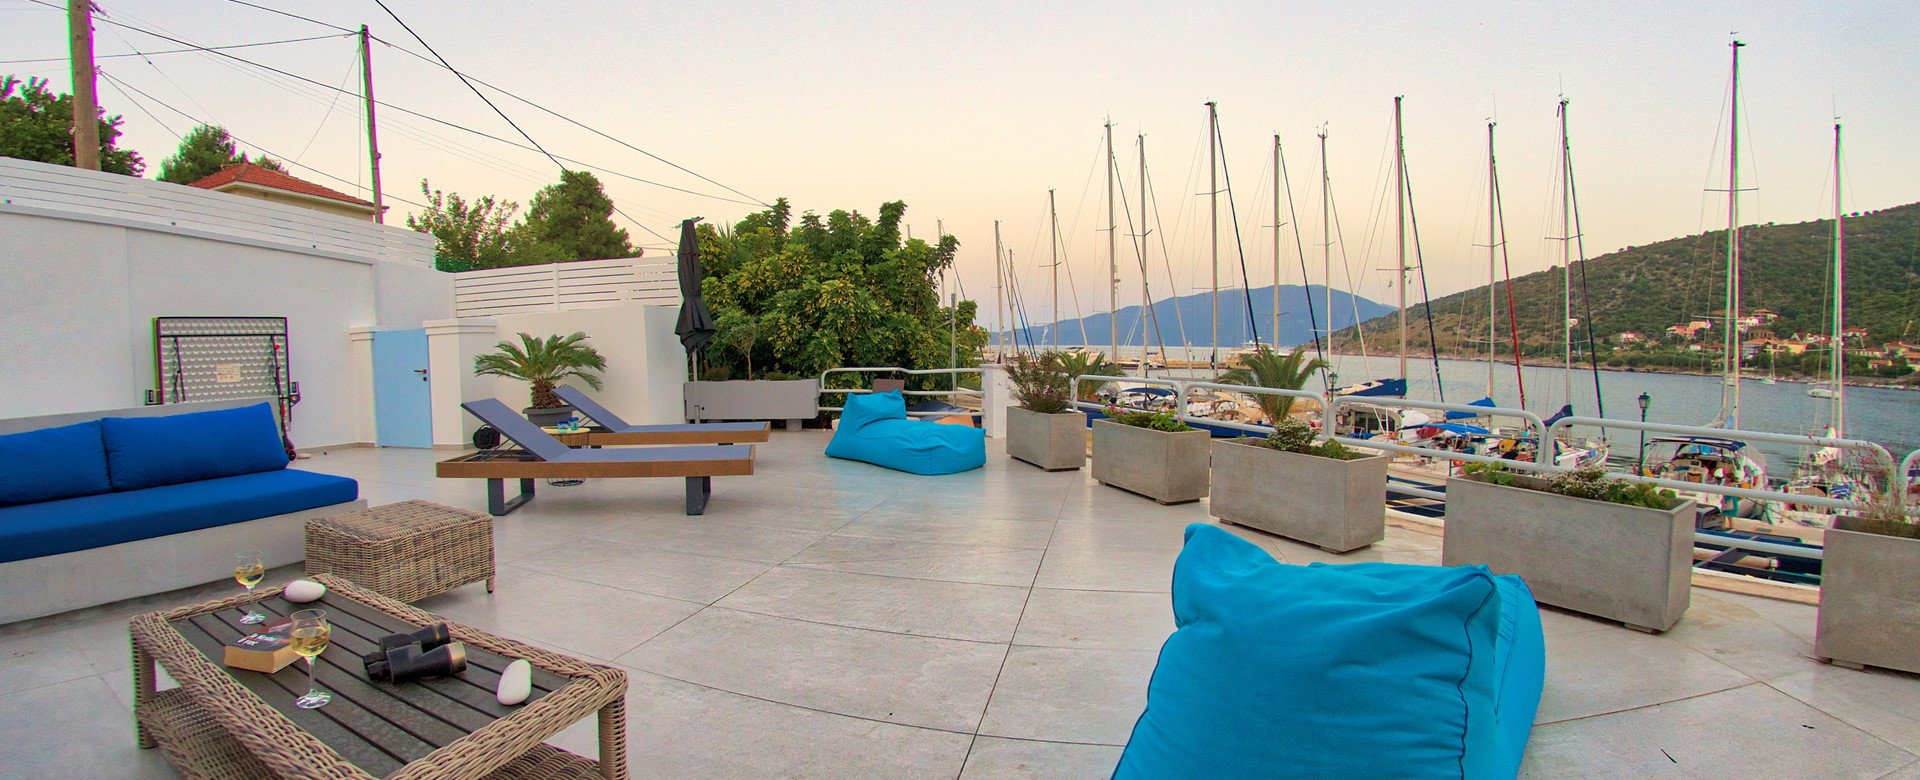 Spacious open patio terrace right on the waterfront with moored yachts outside Palm House Harbourfront Mansion, Agia Efimia, Kefalonia, Greek Islands